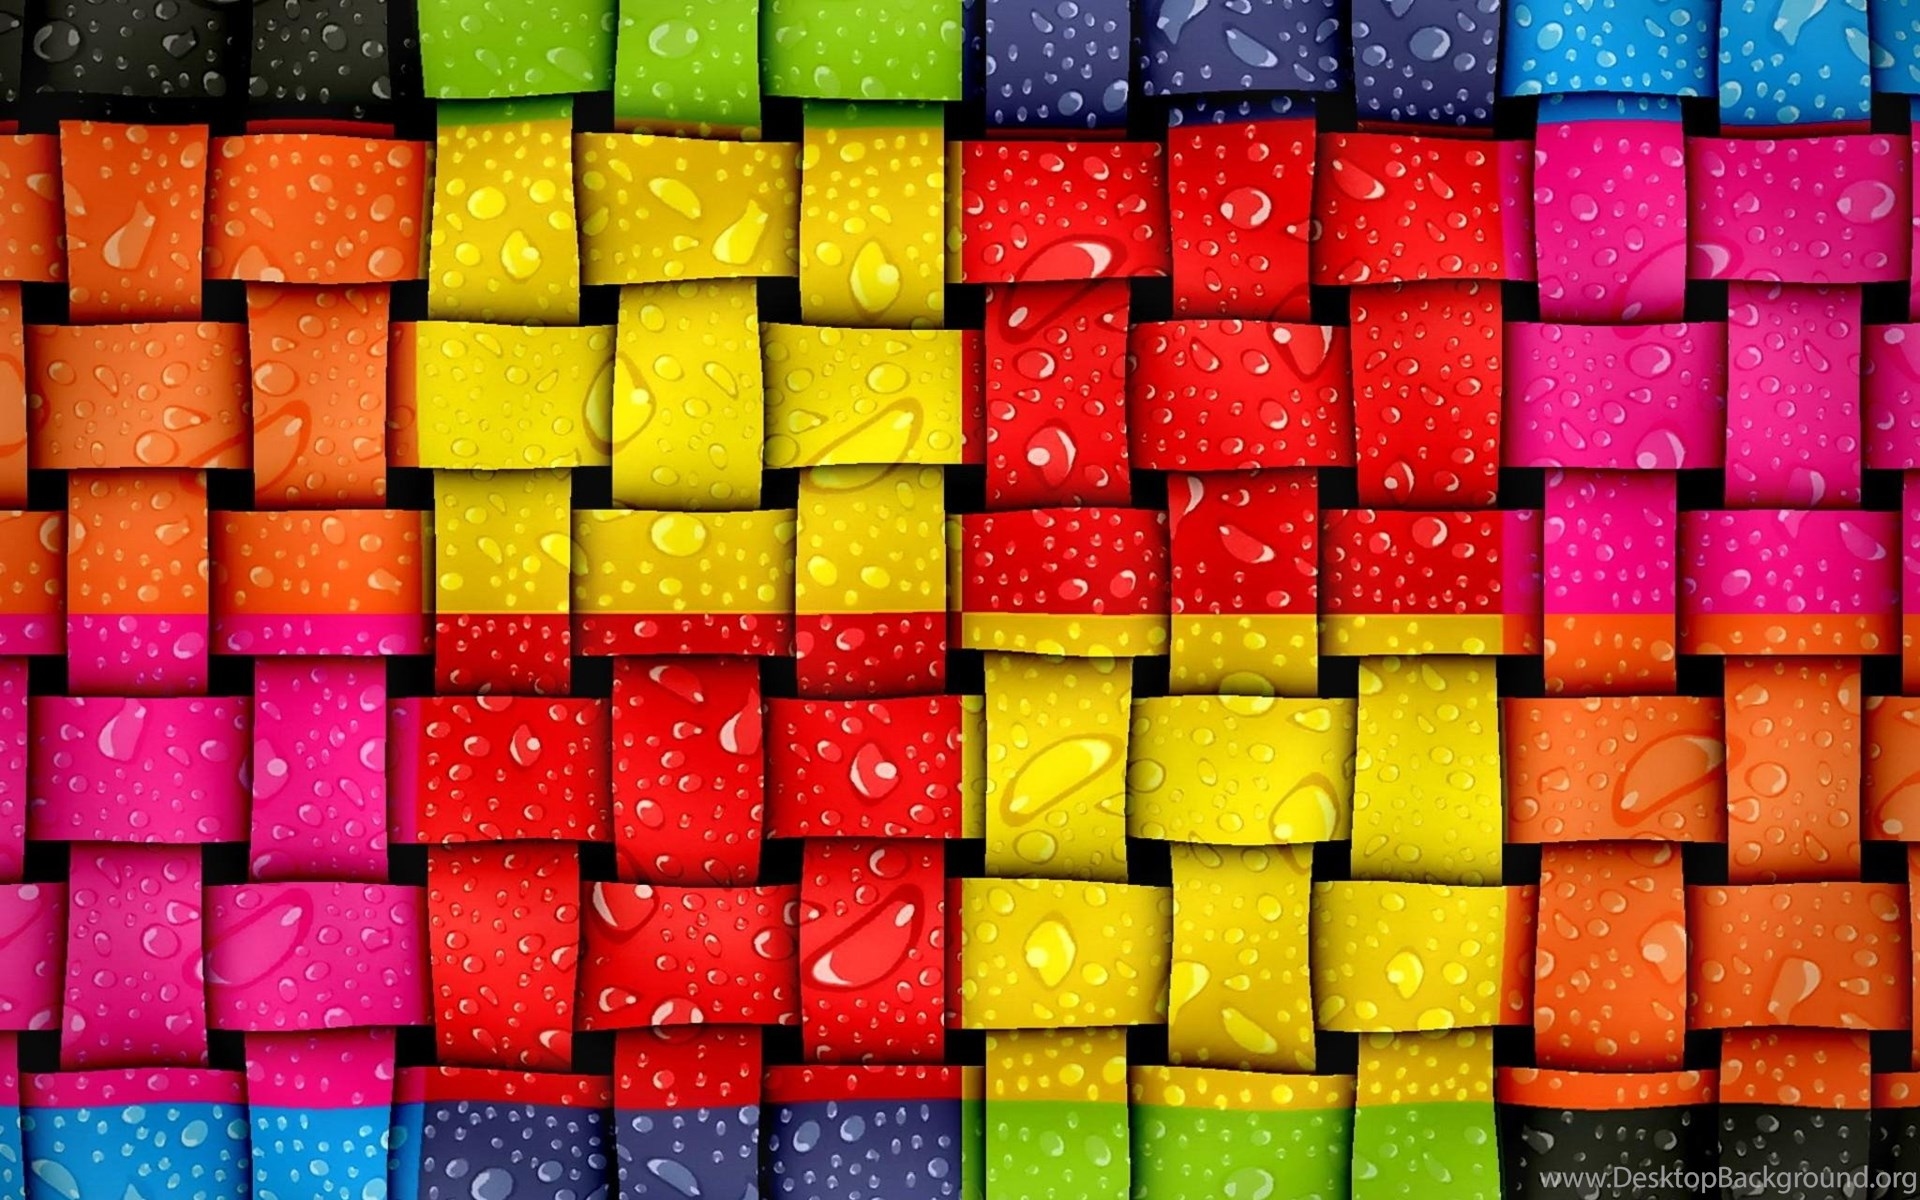 Colorful Wallpapers Hd 2048×2048 Free Wallpapers Full Hd